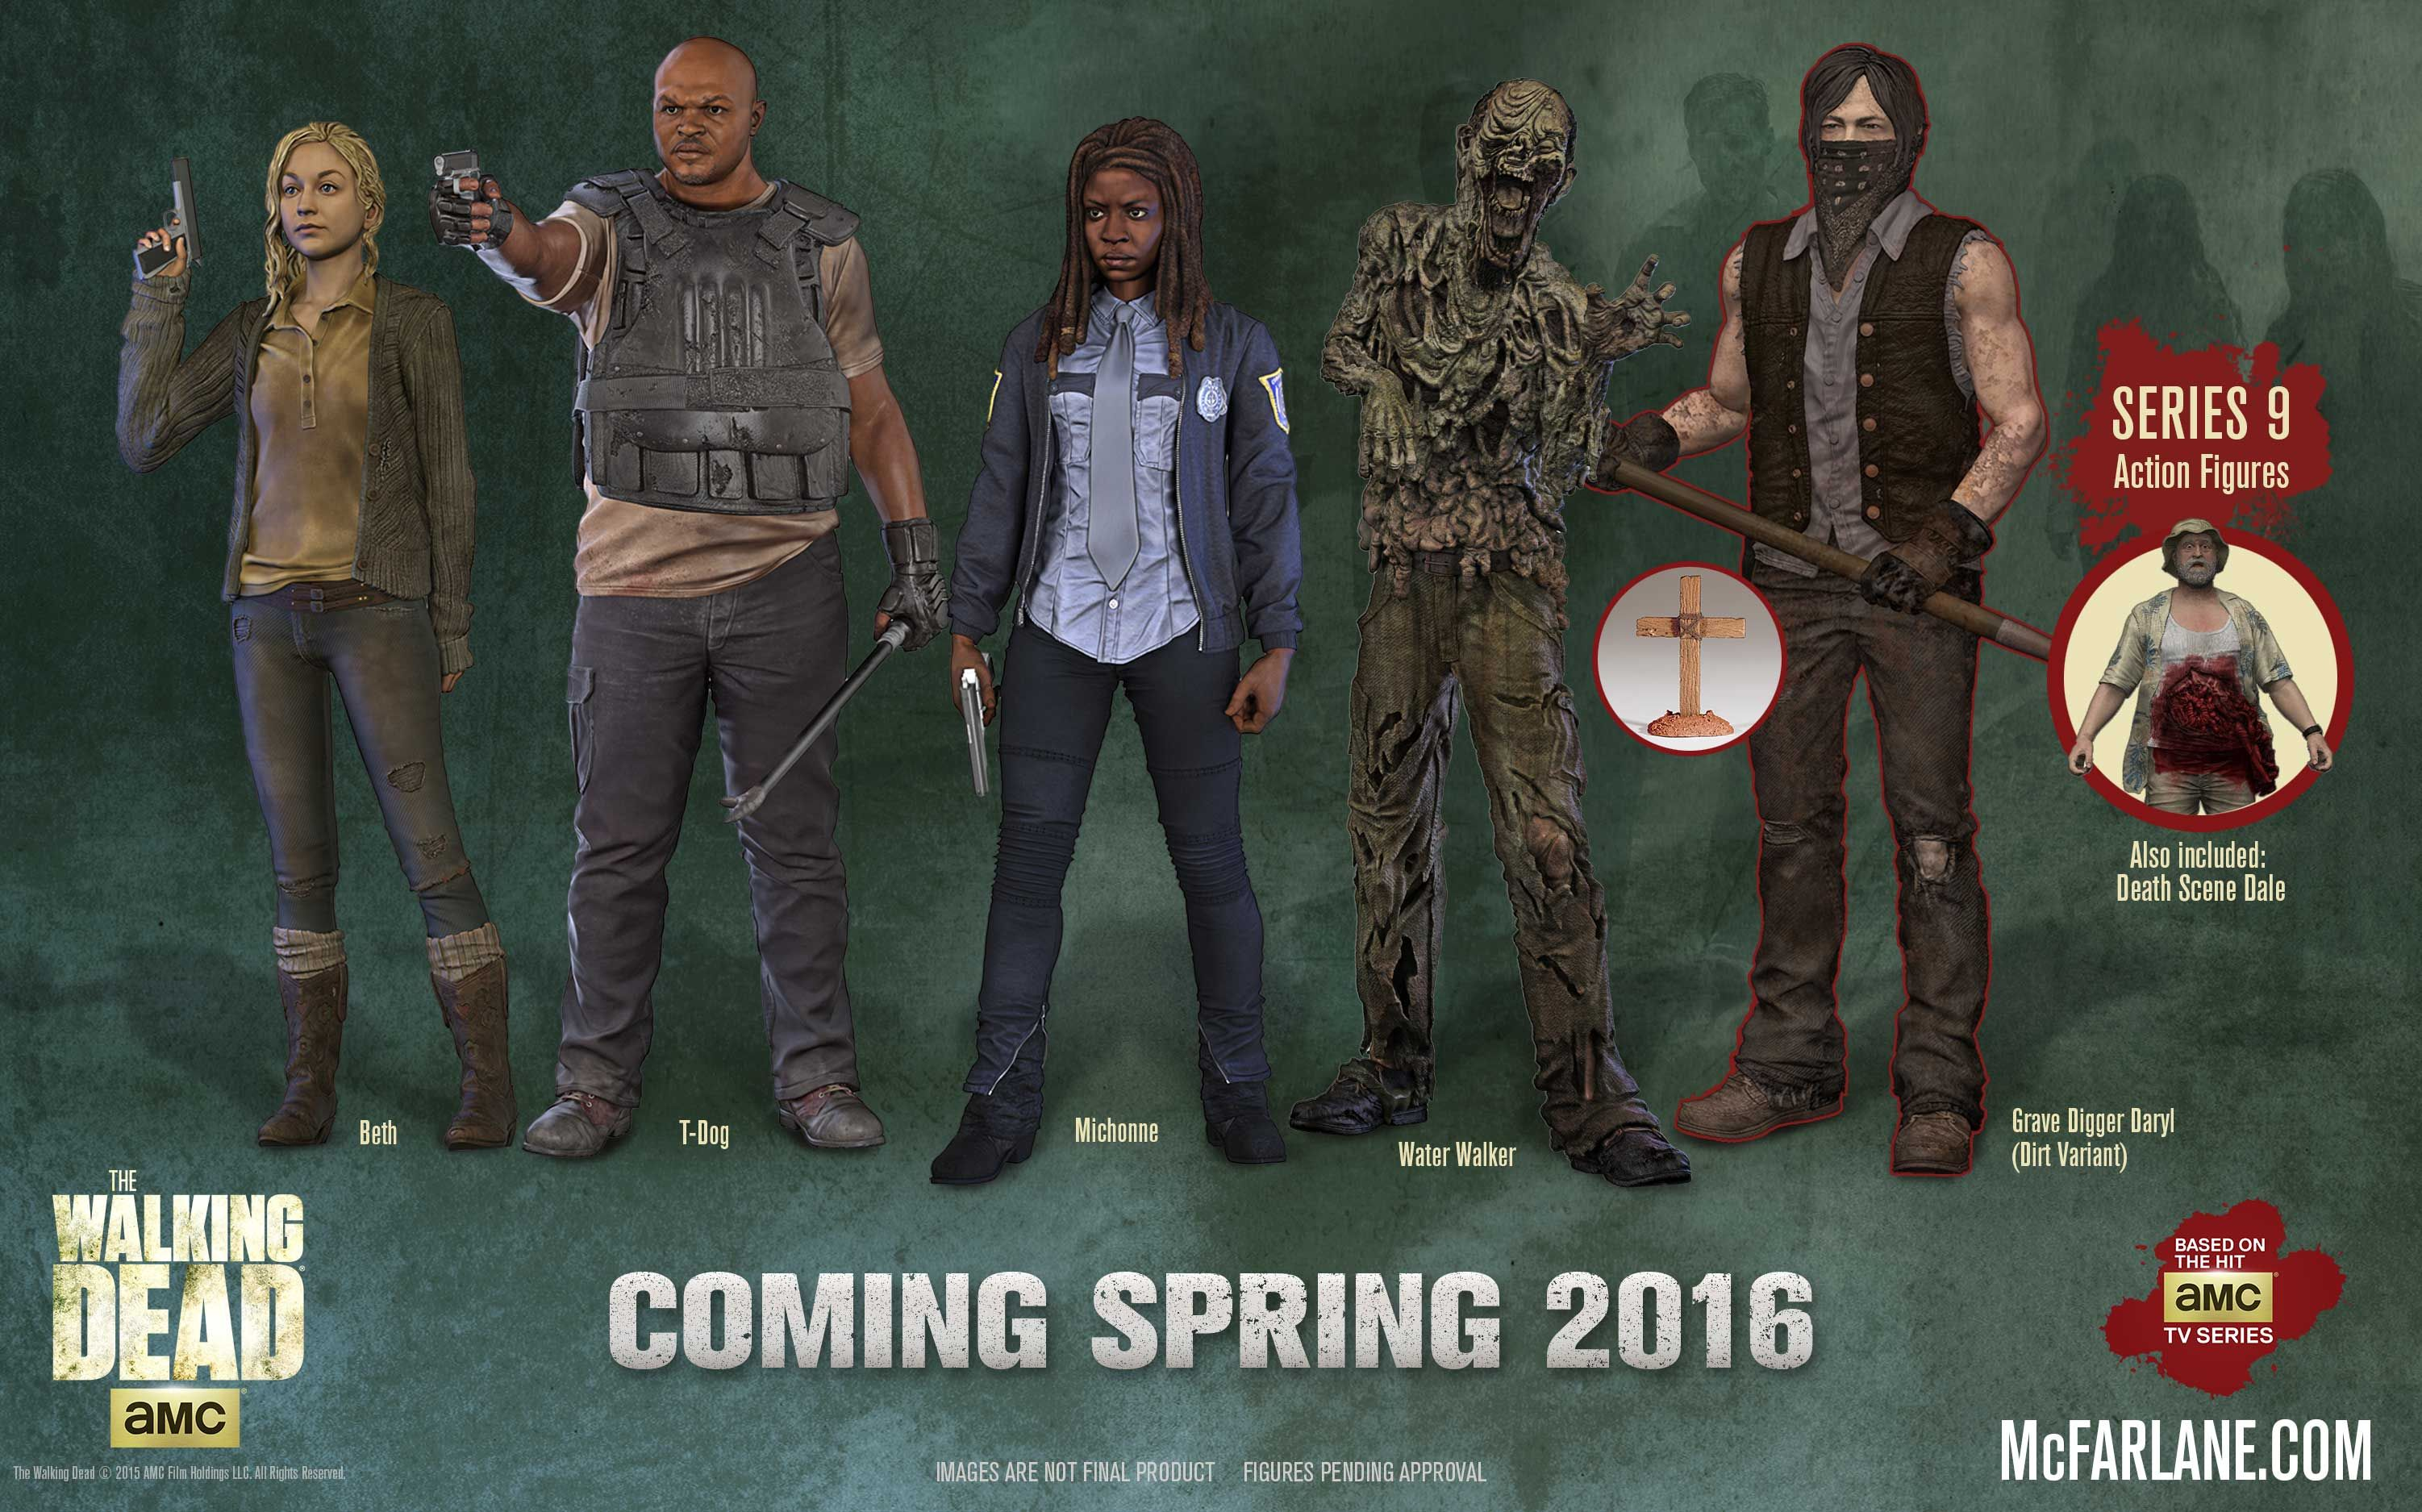 Mcfarlane Reveals The Walking Dead Tv Series 9 Line Up